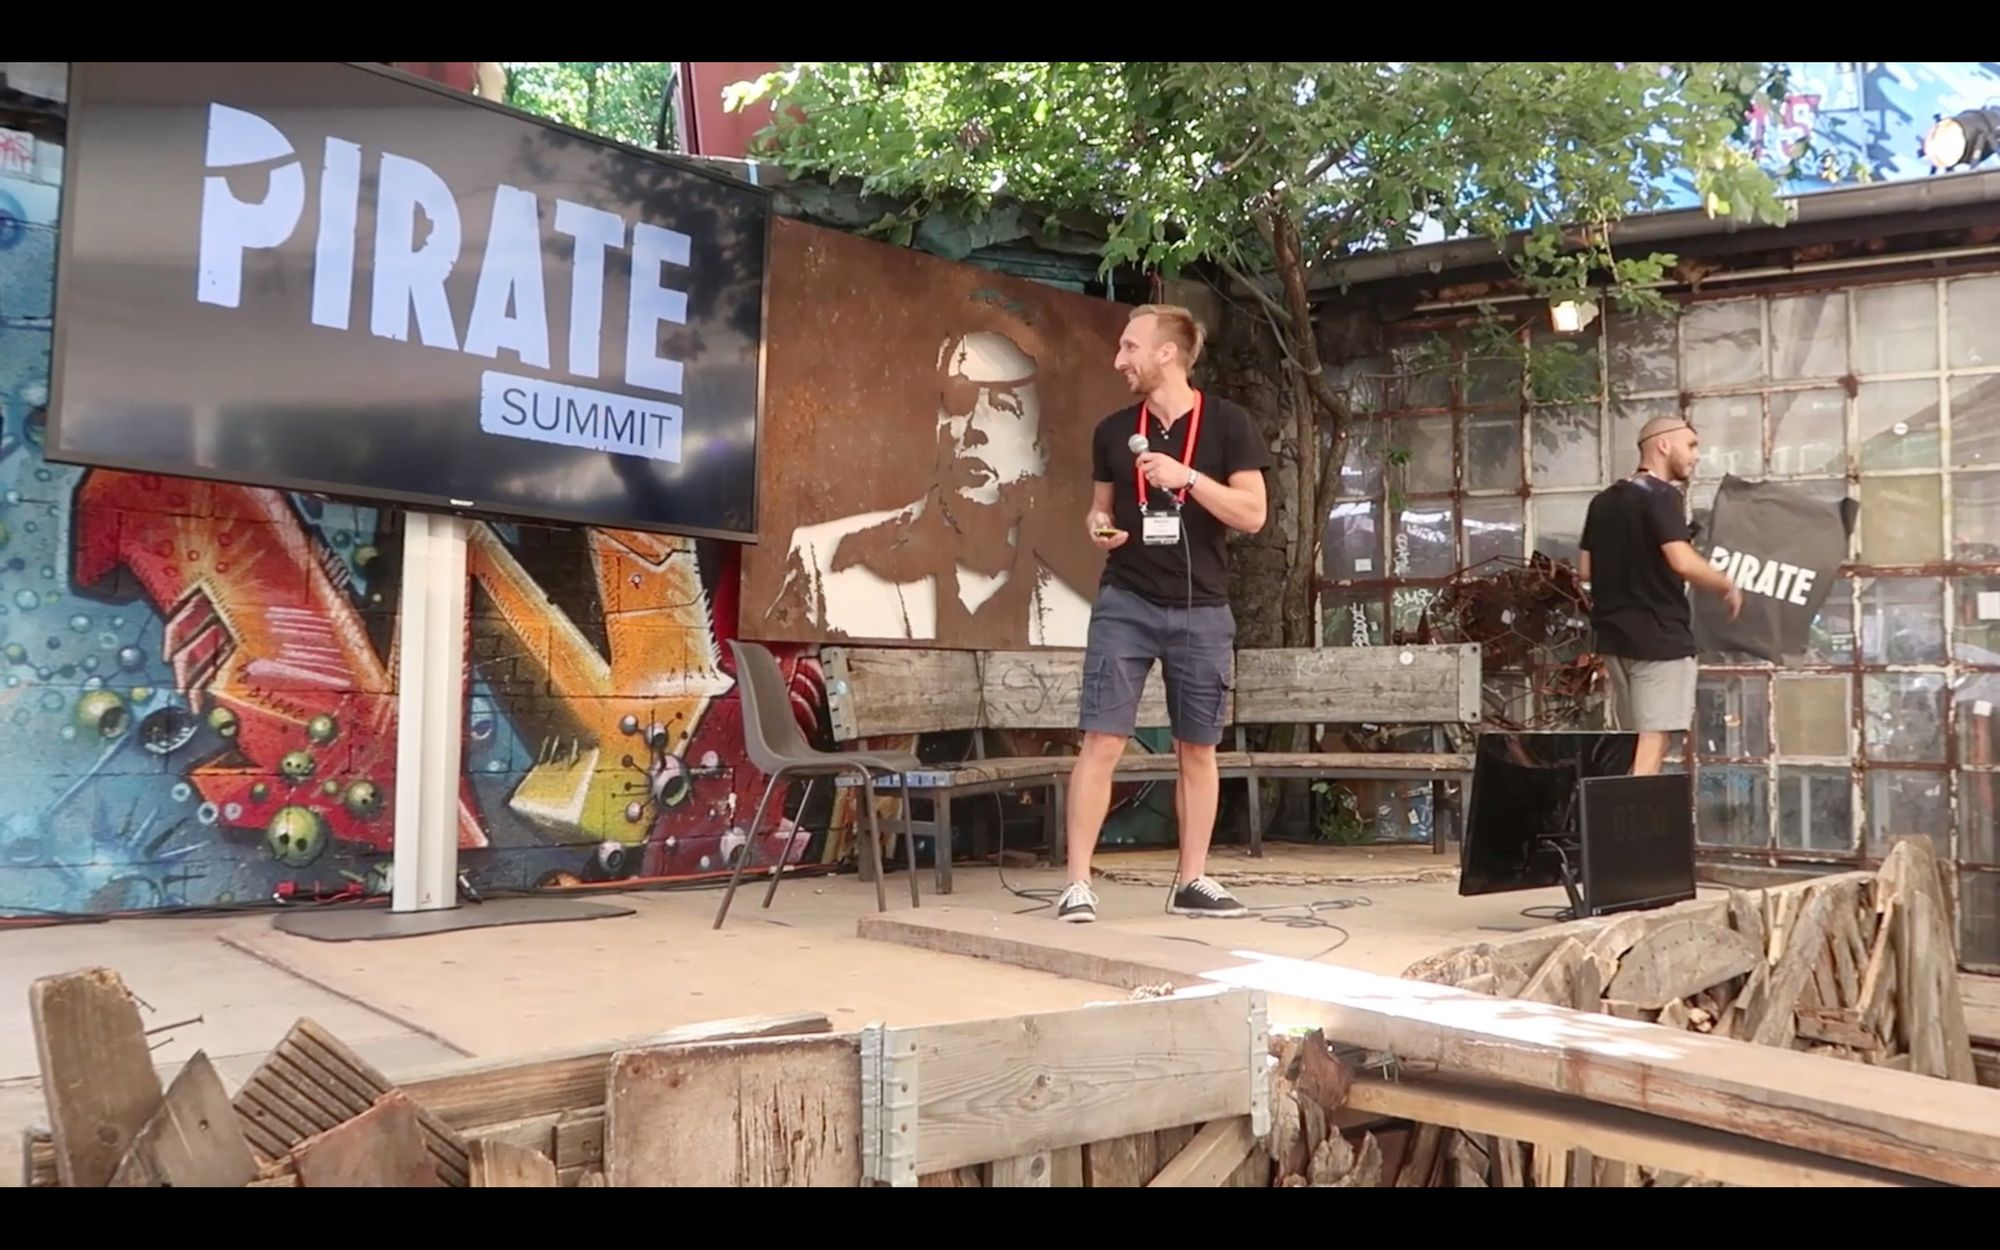 Secfense at Pirate Summit pitching in Cologne for top European VCs